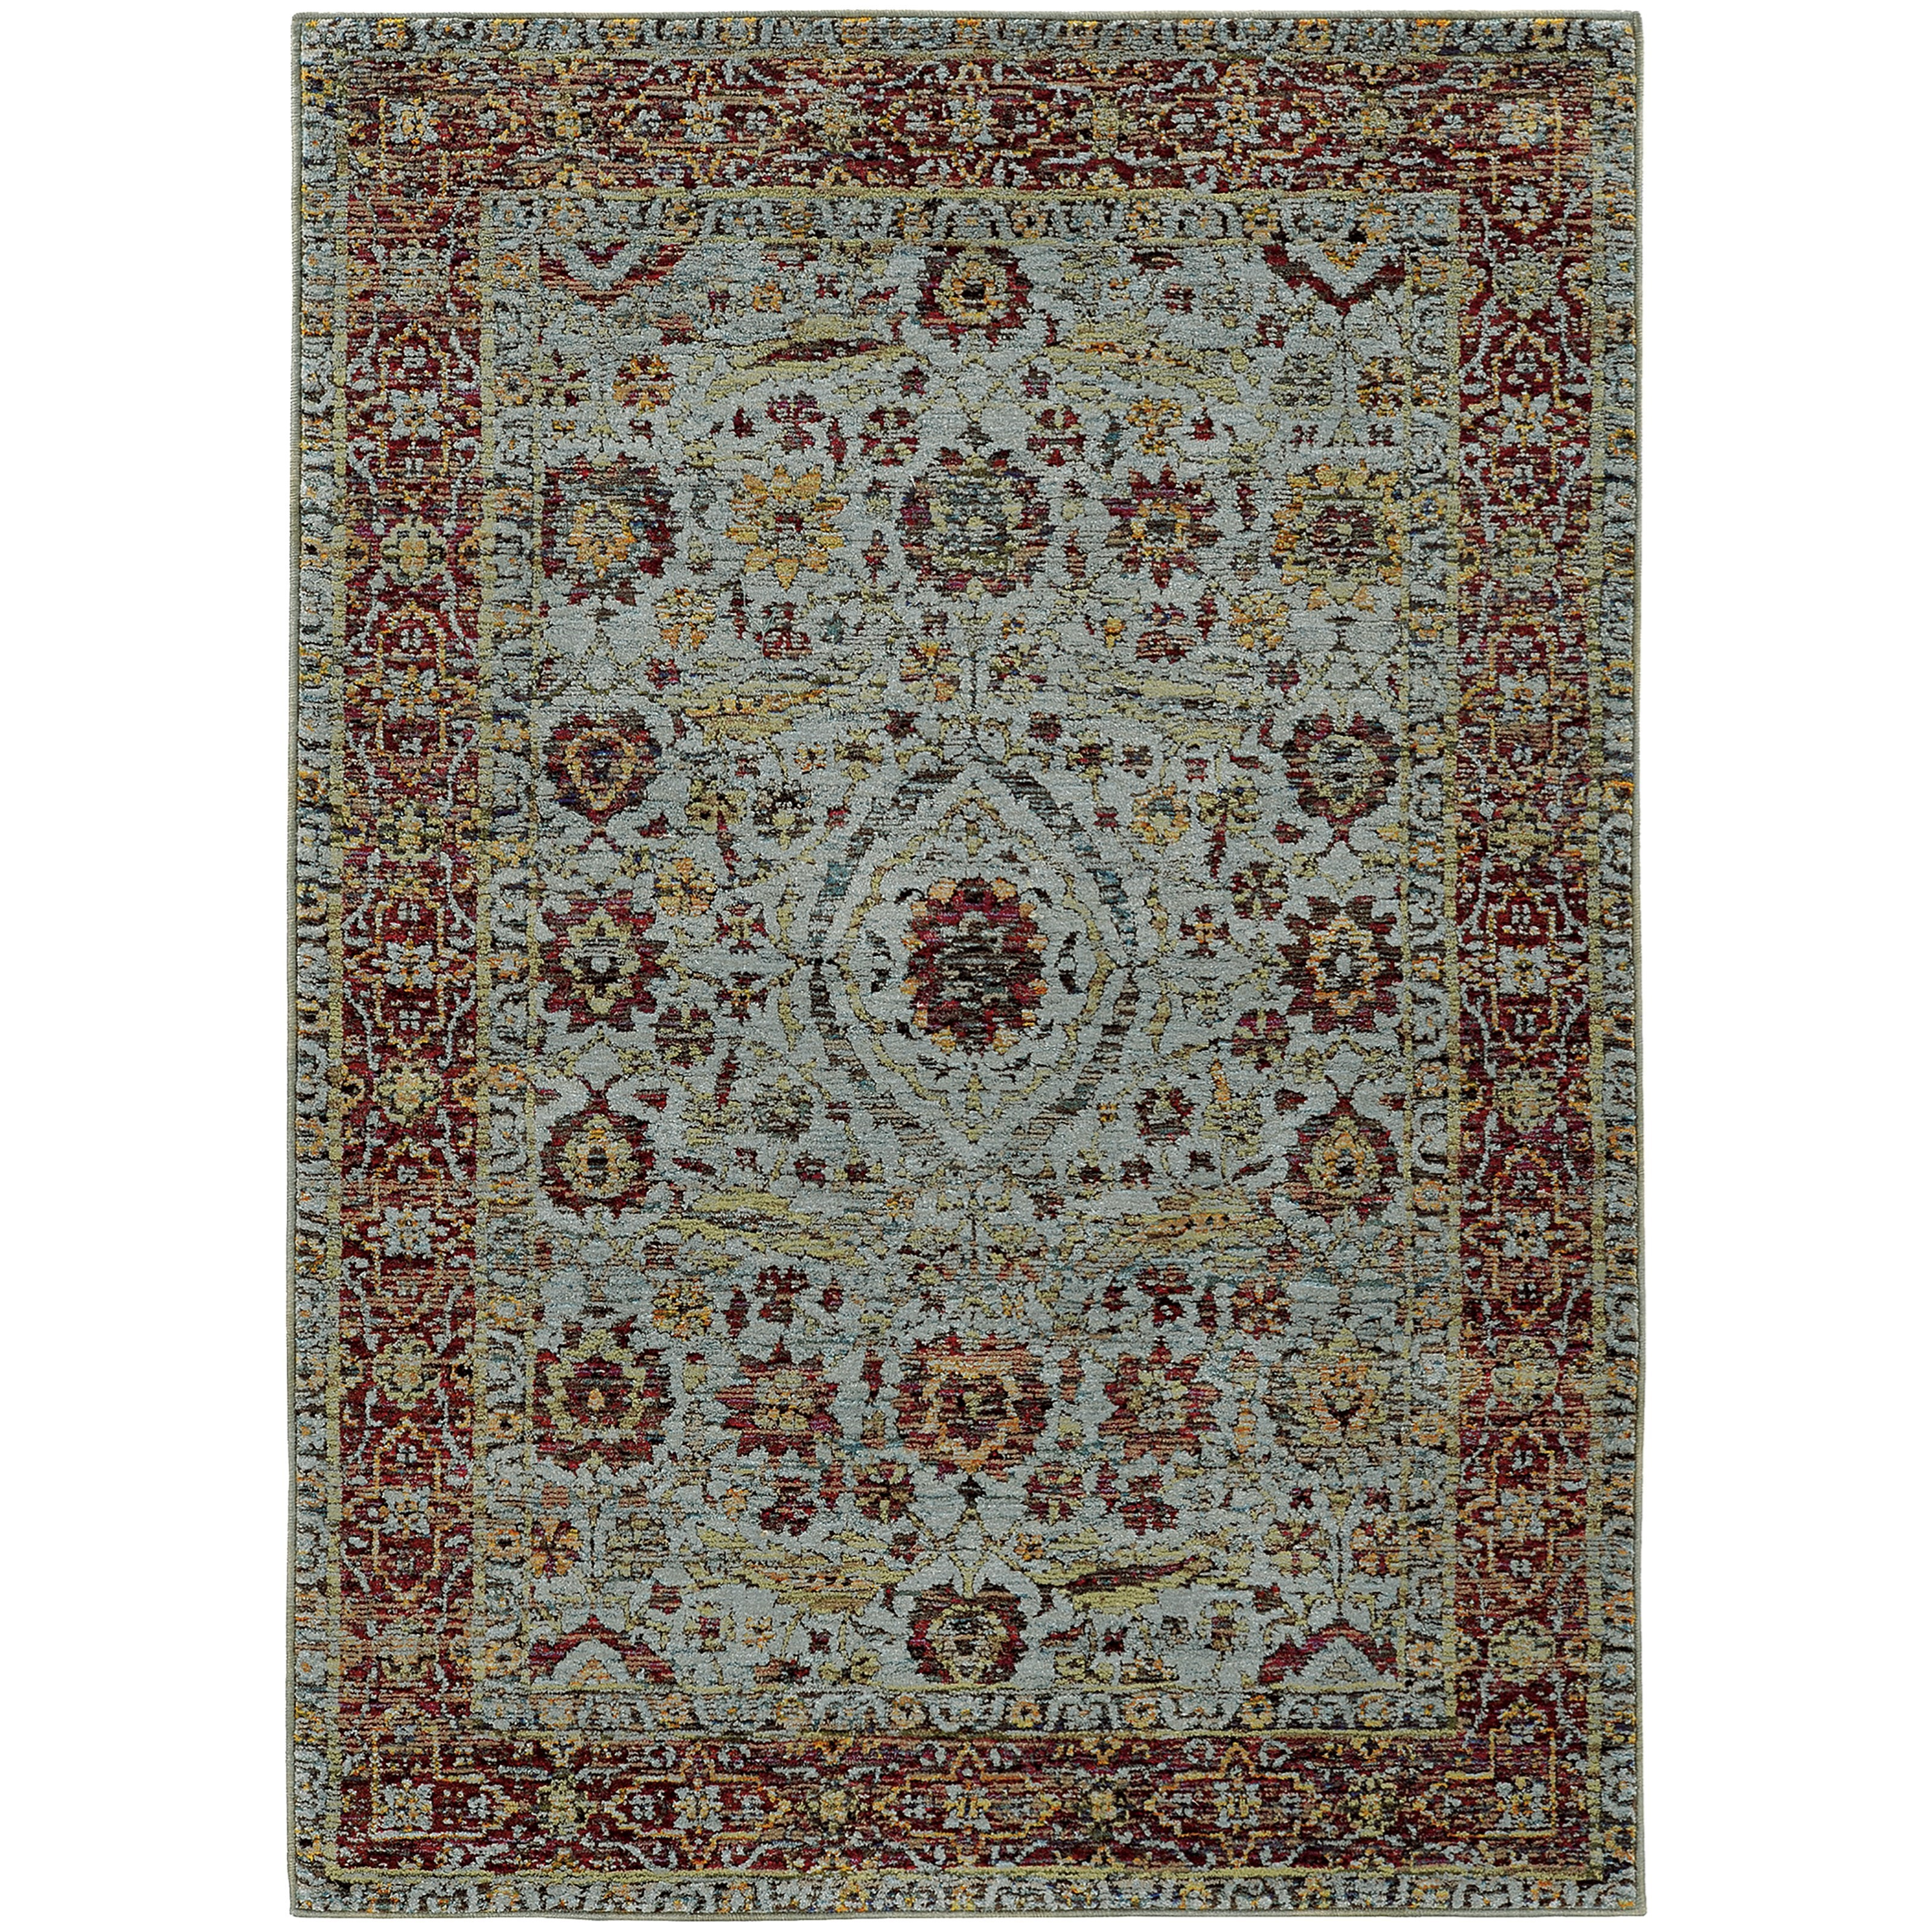 "Andorra 6' 7"" X  9' 6"" Casual Blue/ Red Rectangle Ru by Oriental Weavers at Steger's Furniture"